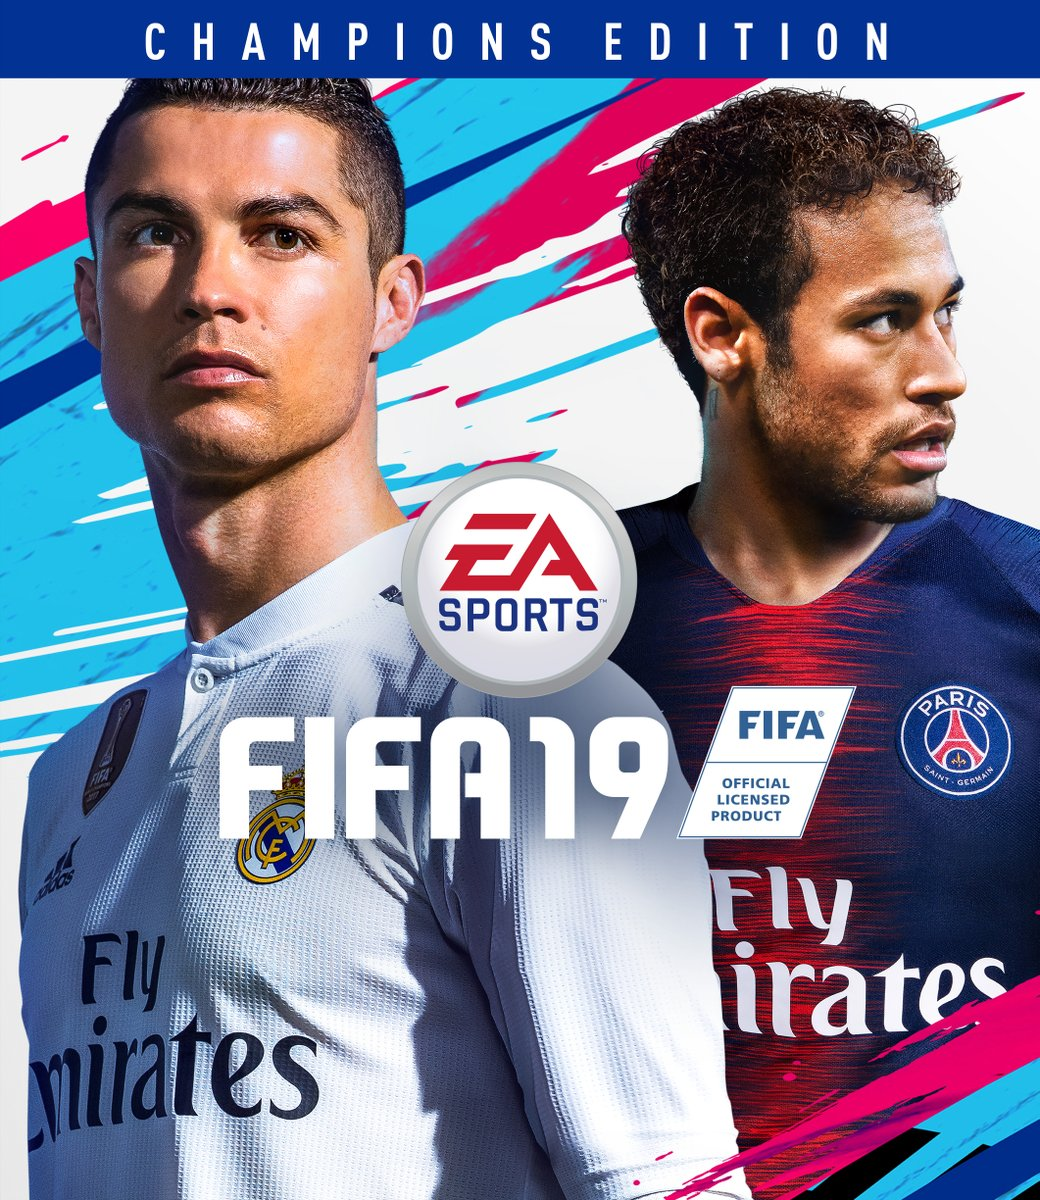 Embed only: FIFA 19 Champions Edition Cover